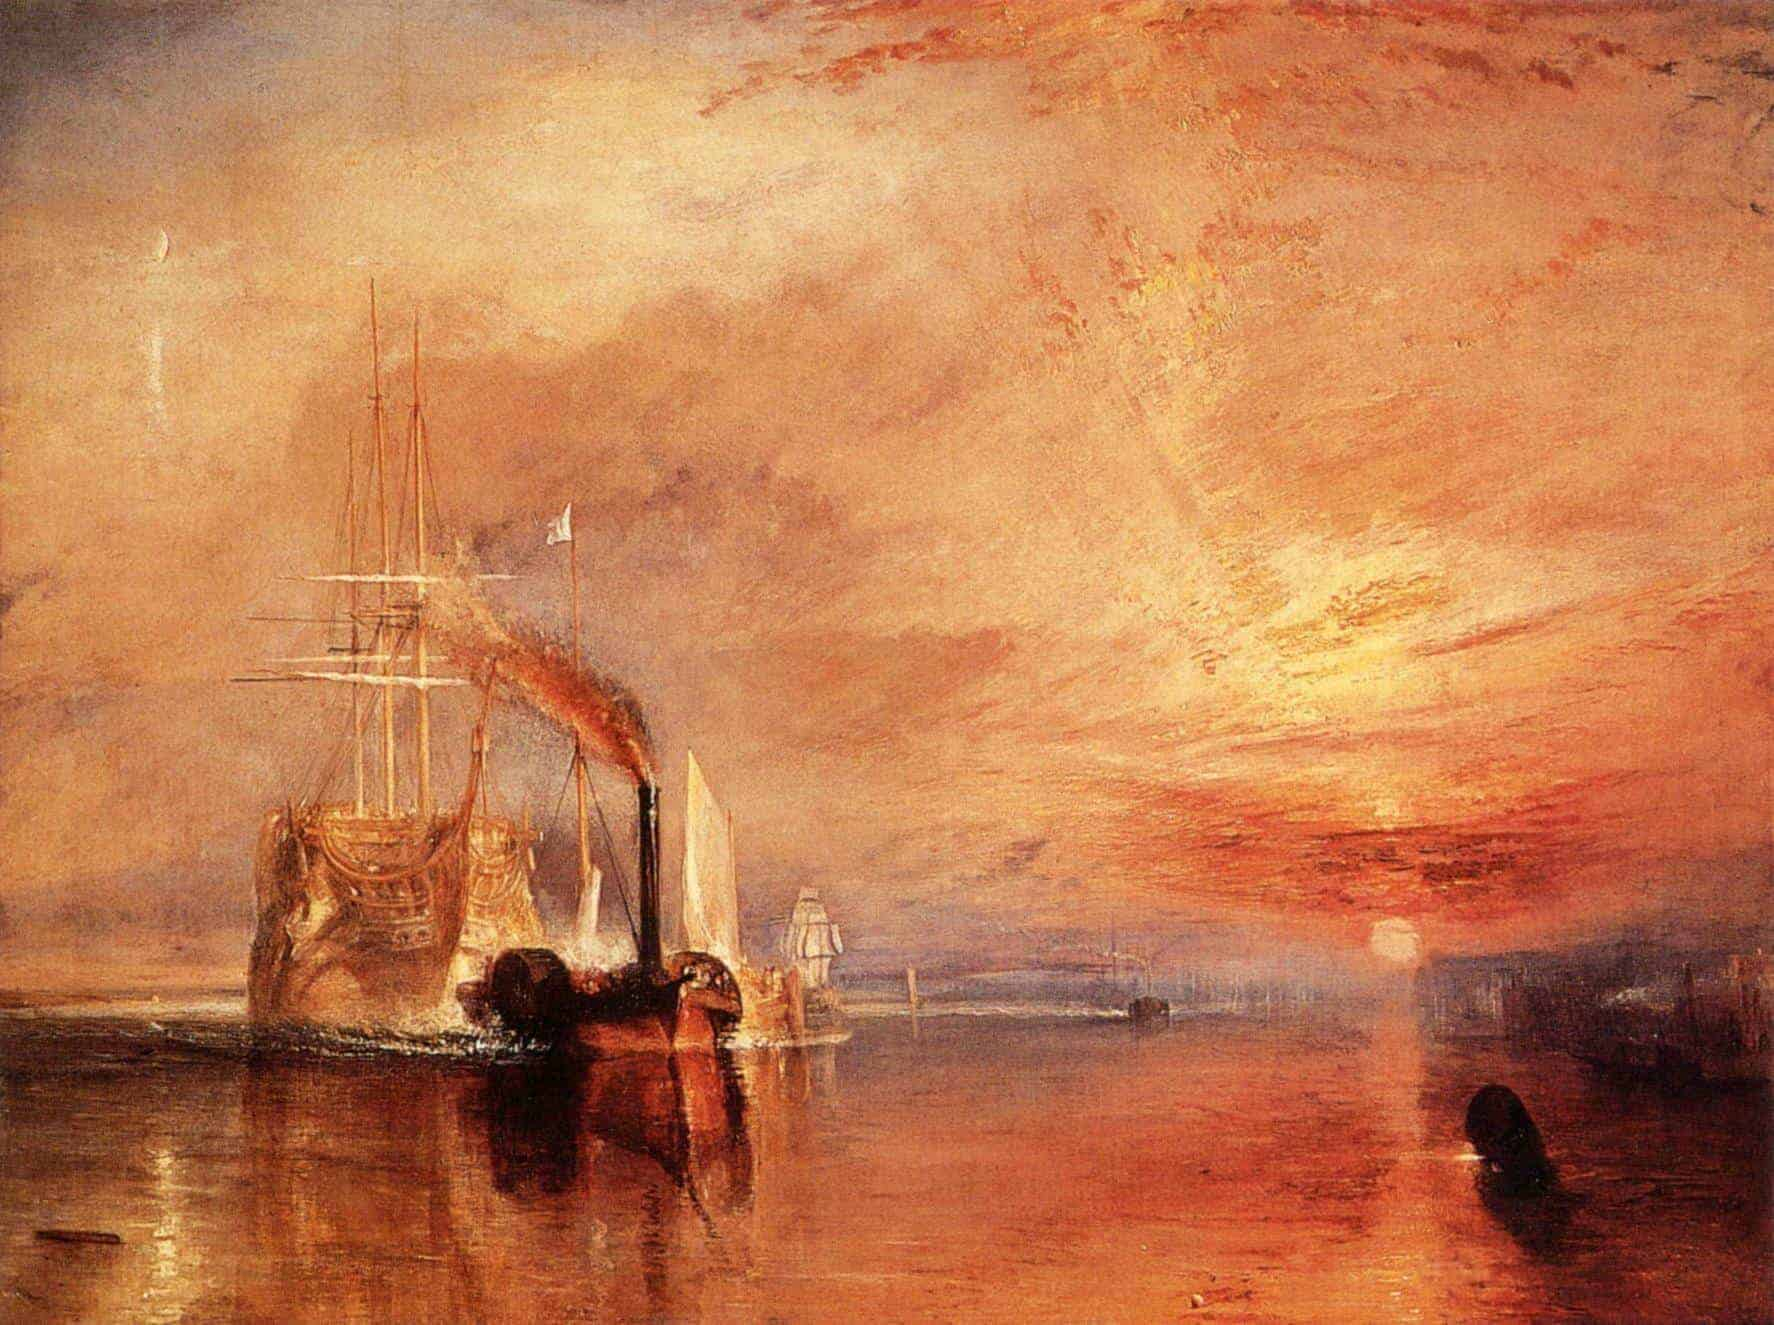 Joseph Mallord William Turner – The Fighting Téméraire (1836)